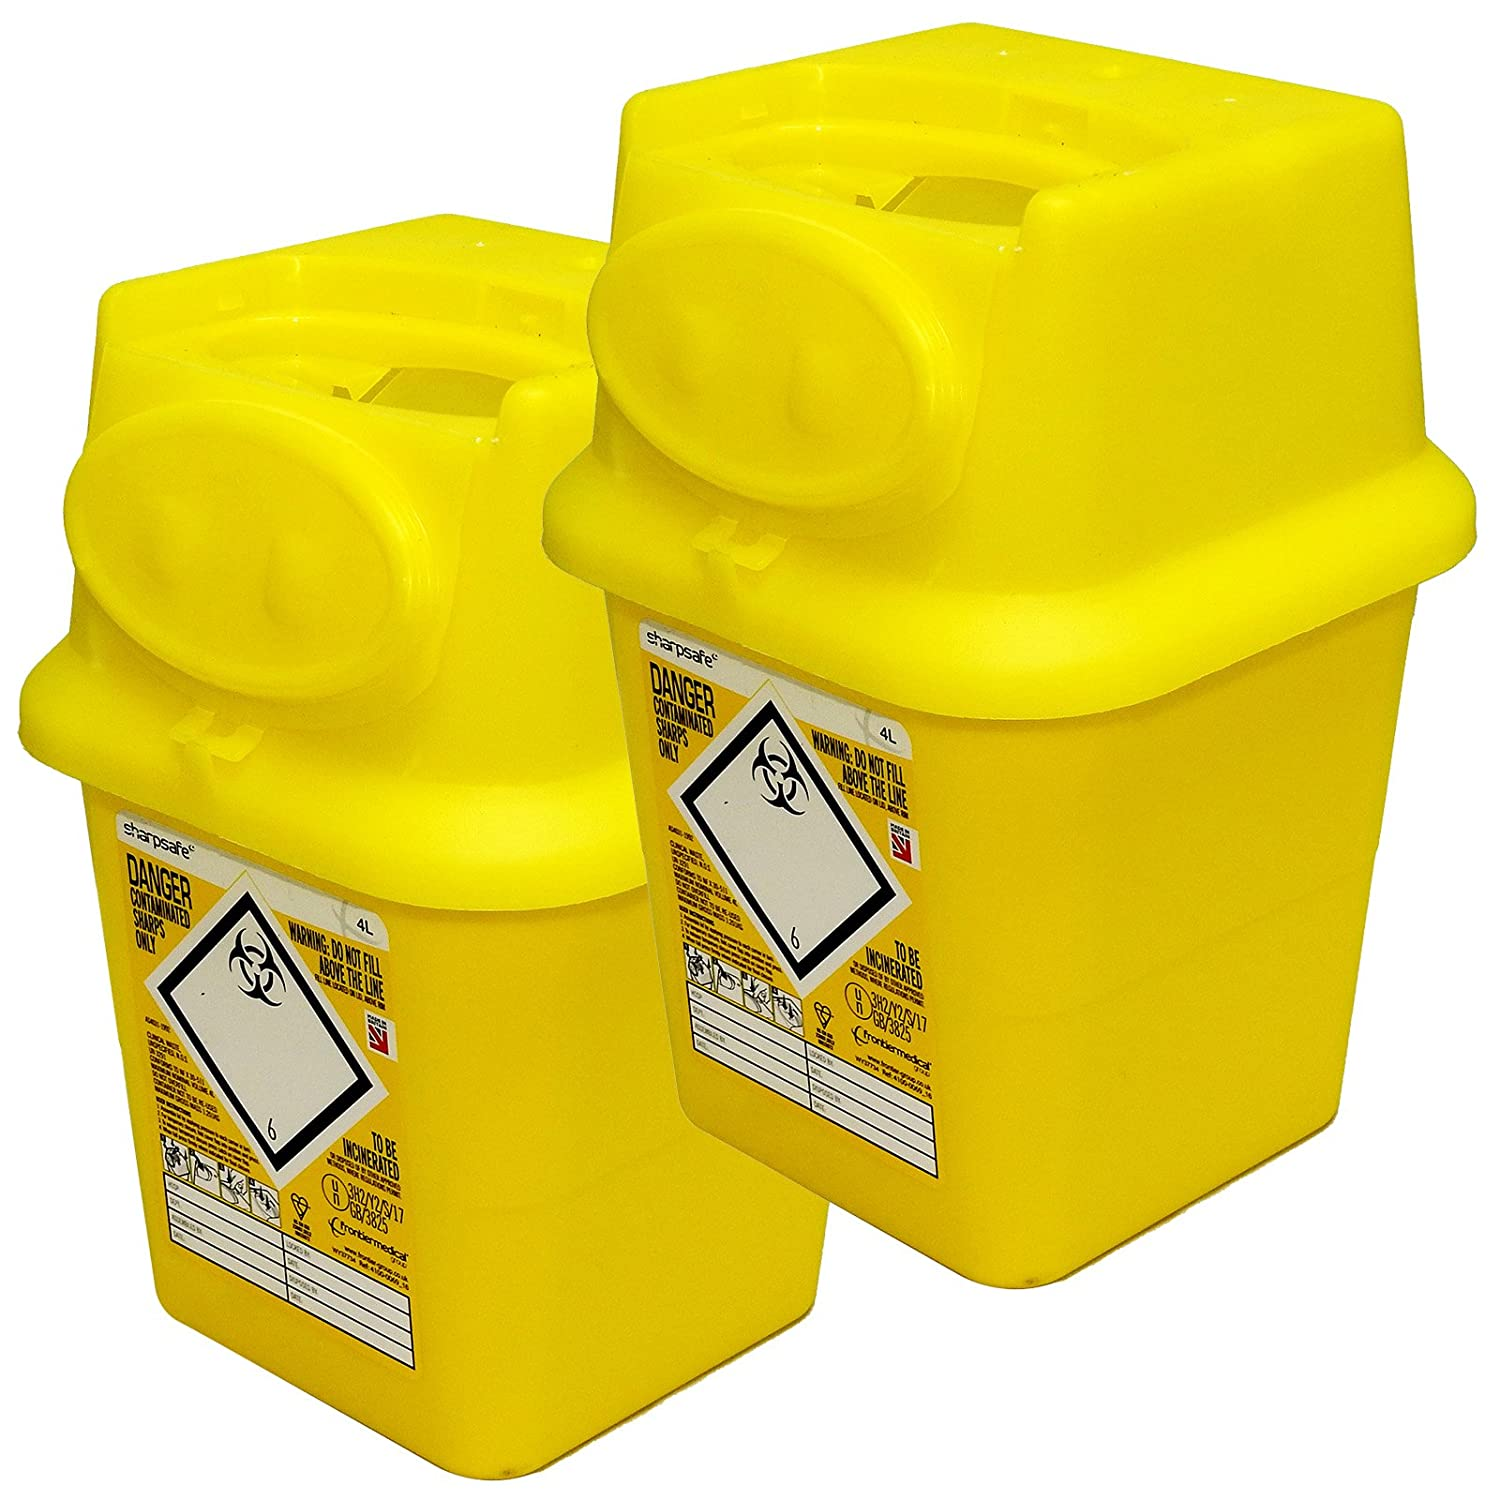 Qualicare Sharps Safe Needle Syringe Insulin Disposal Surgery Waste Bin Box - 4 Litre, Twin Pack